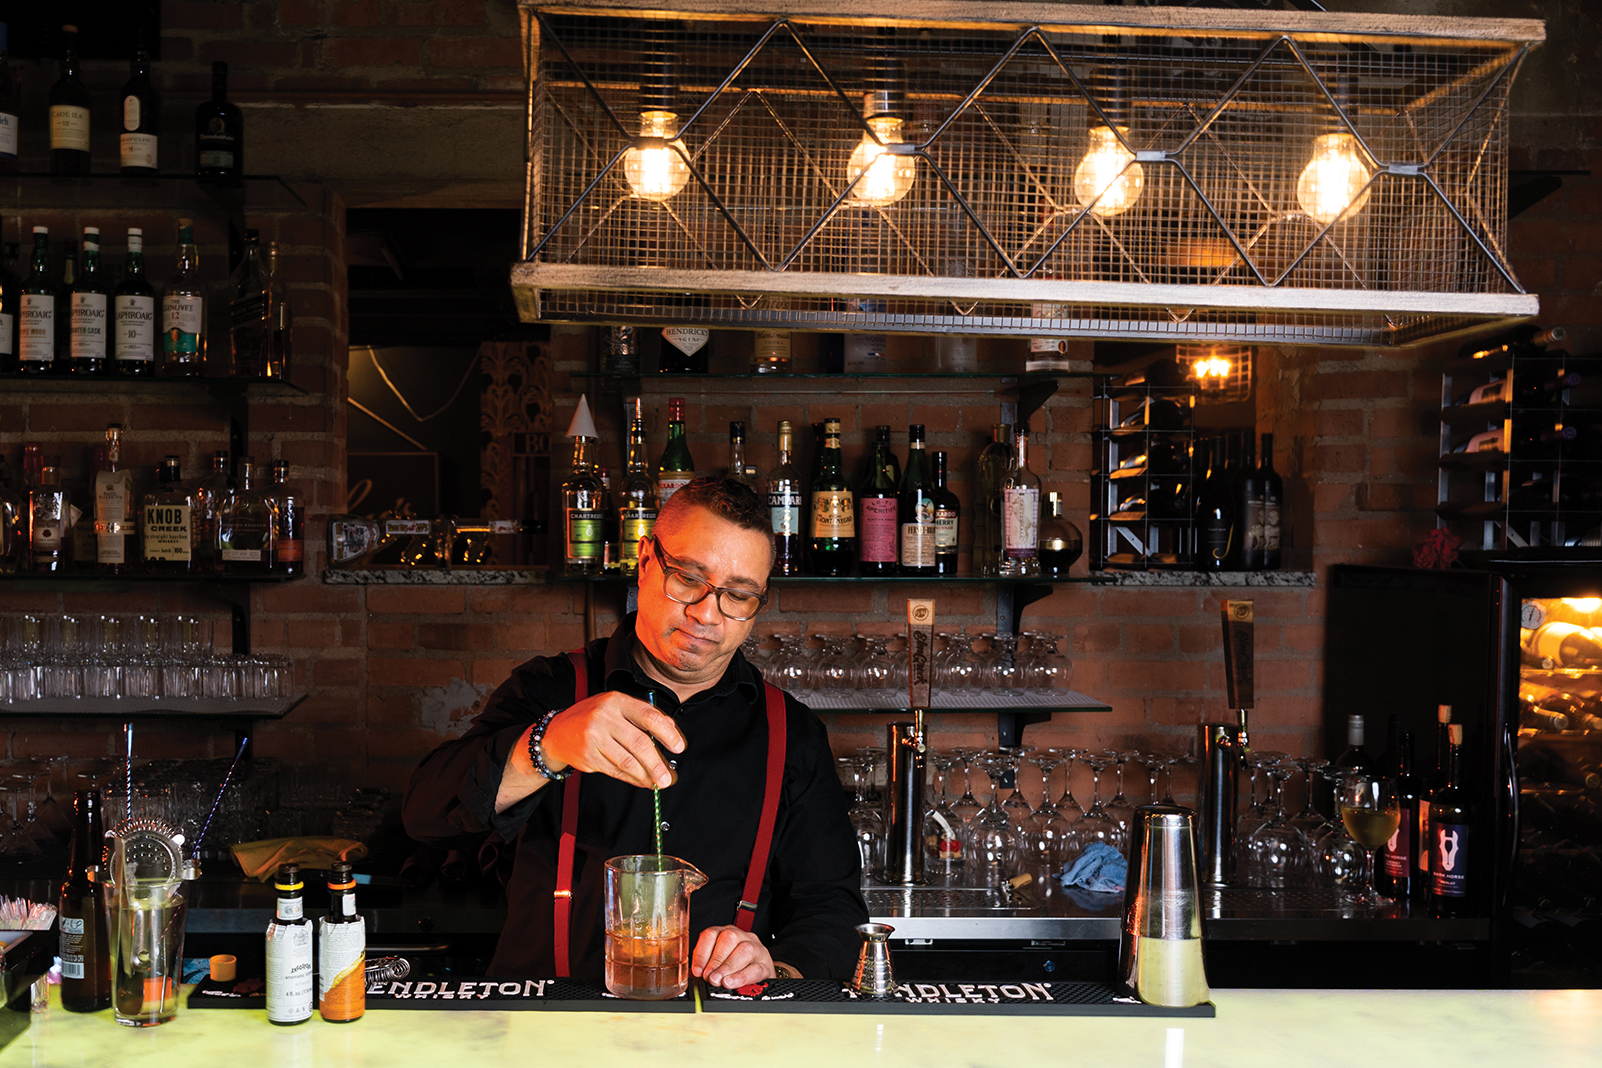 A bartender at Nucky's